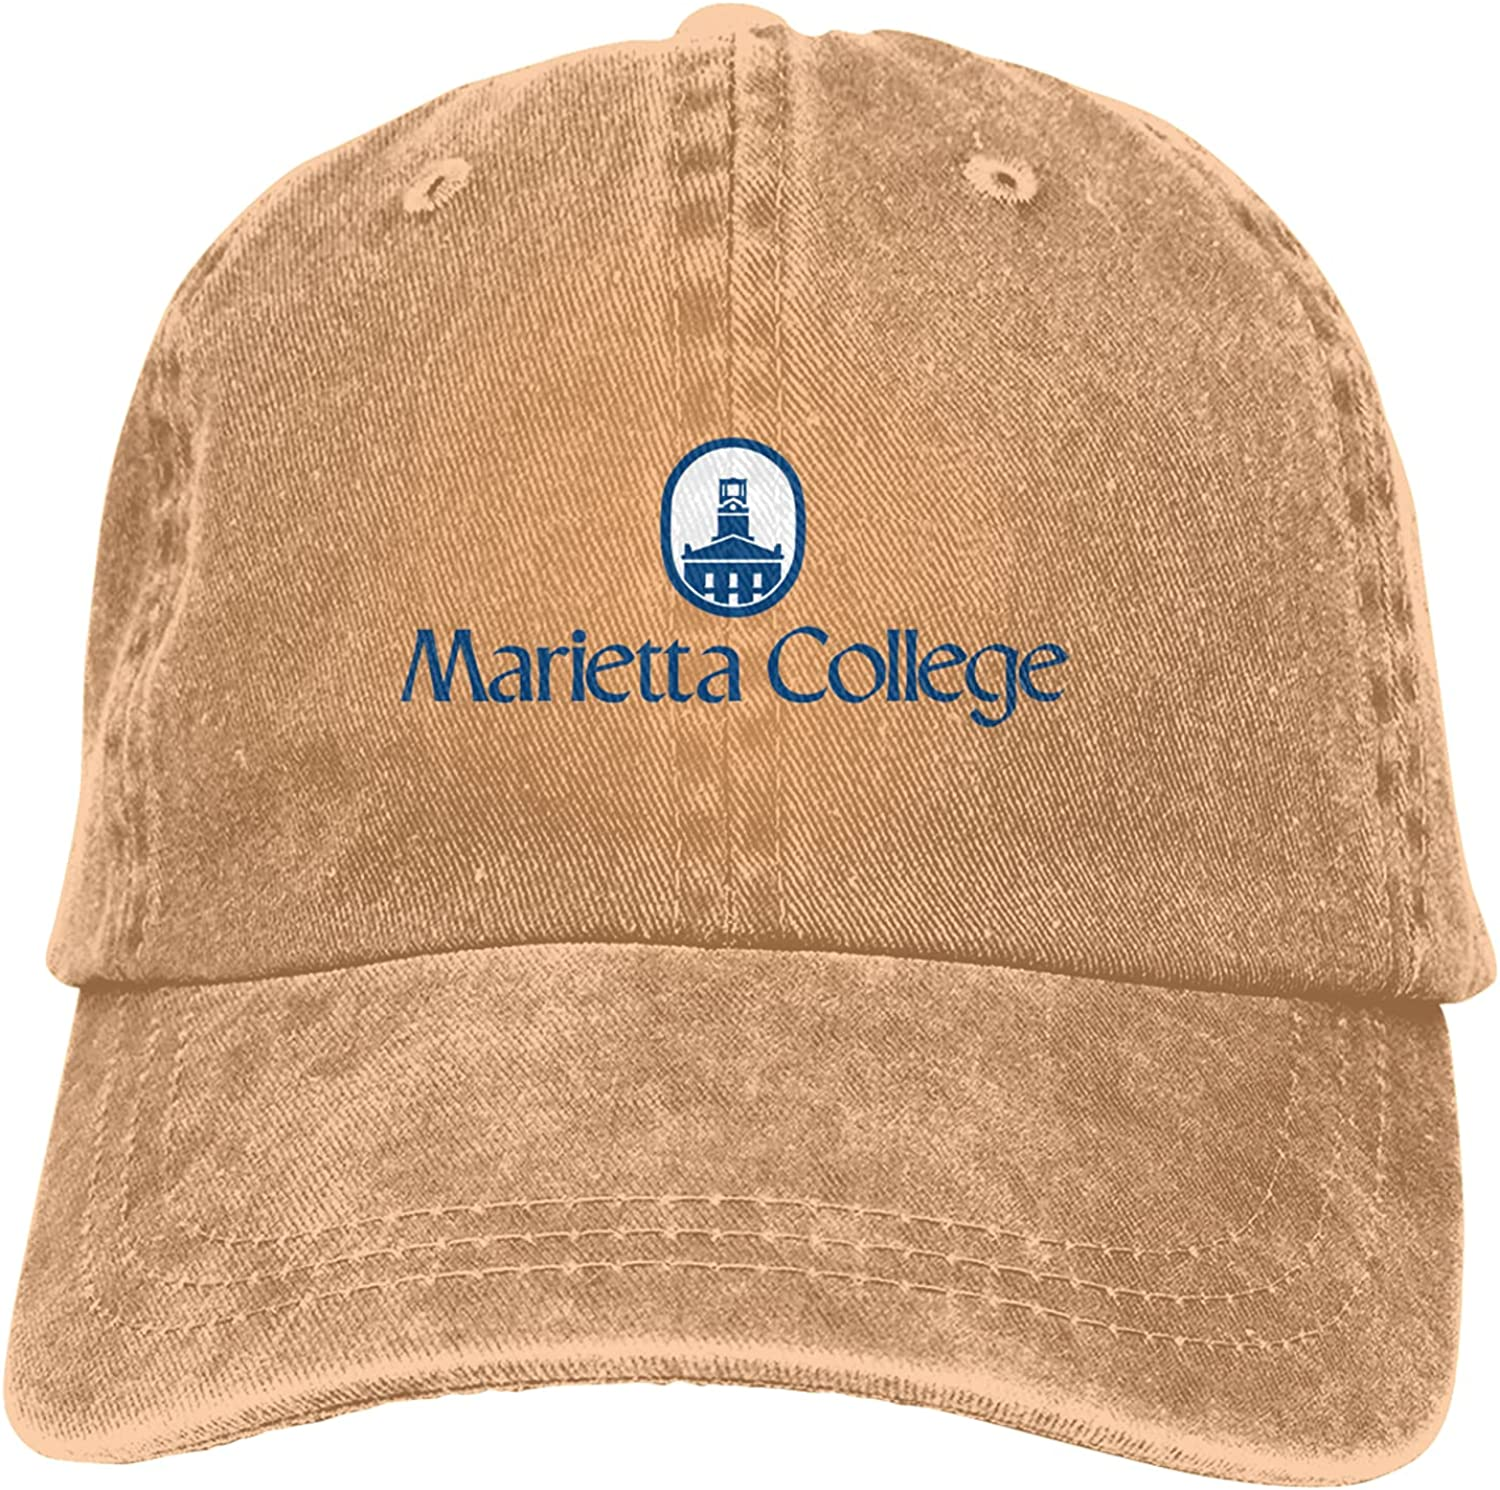 Yund Los Angeles Mall Marietta College 1 Kansas City Mall Cap for Adjus Students. Suitable